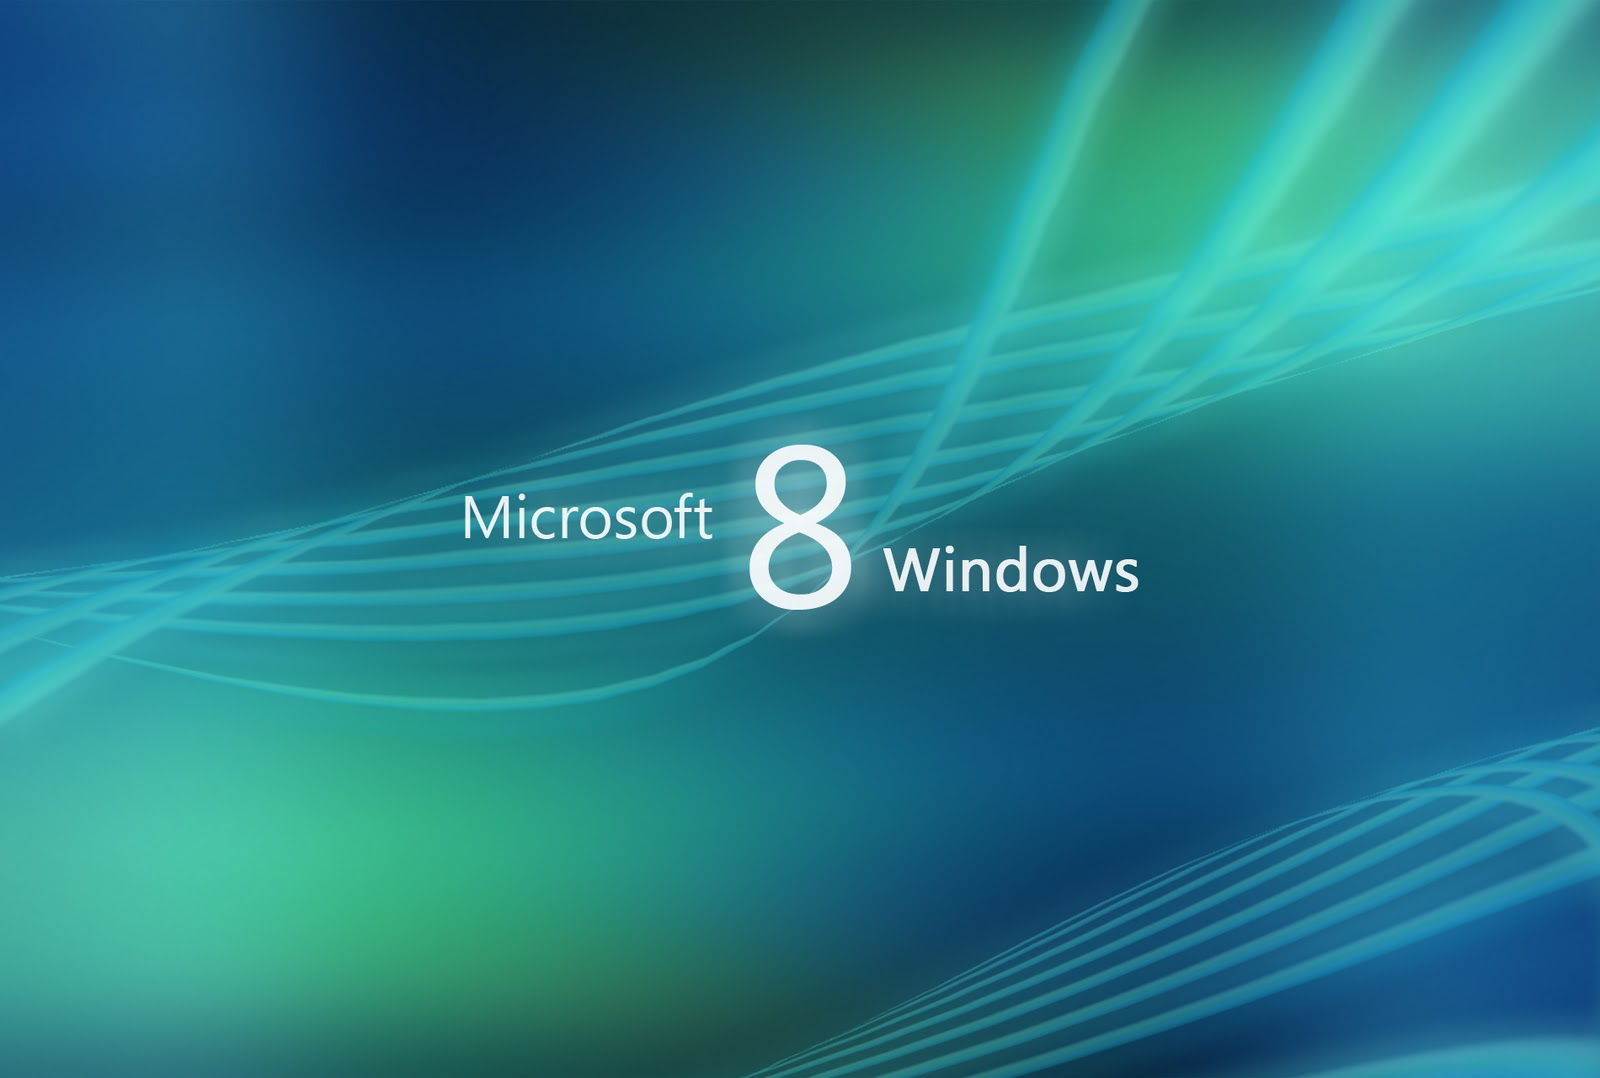 Live Wallpapers Windows 8 28 Wallpapers: HD Wallpapers: WINDOWS 8 HD WALLPAPERS